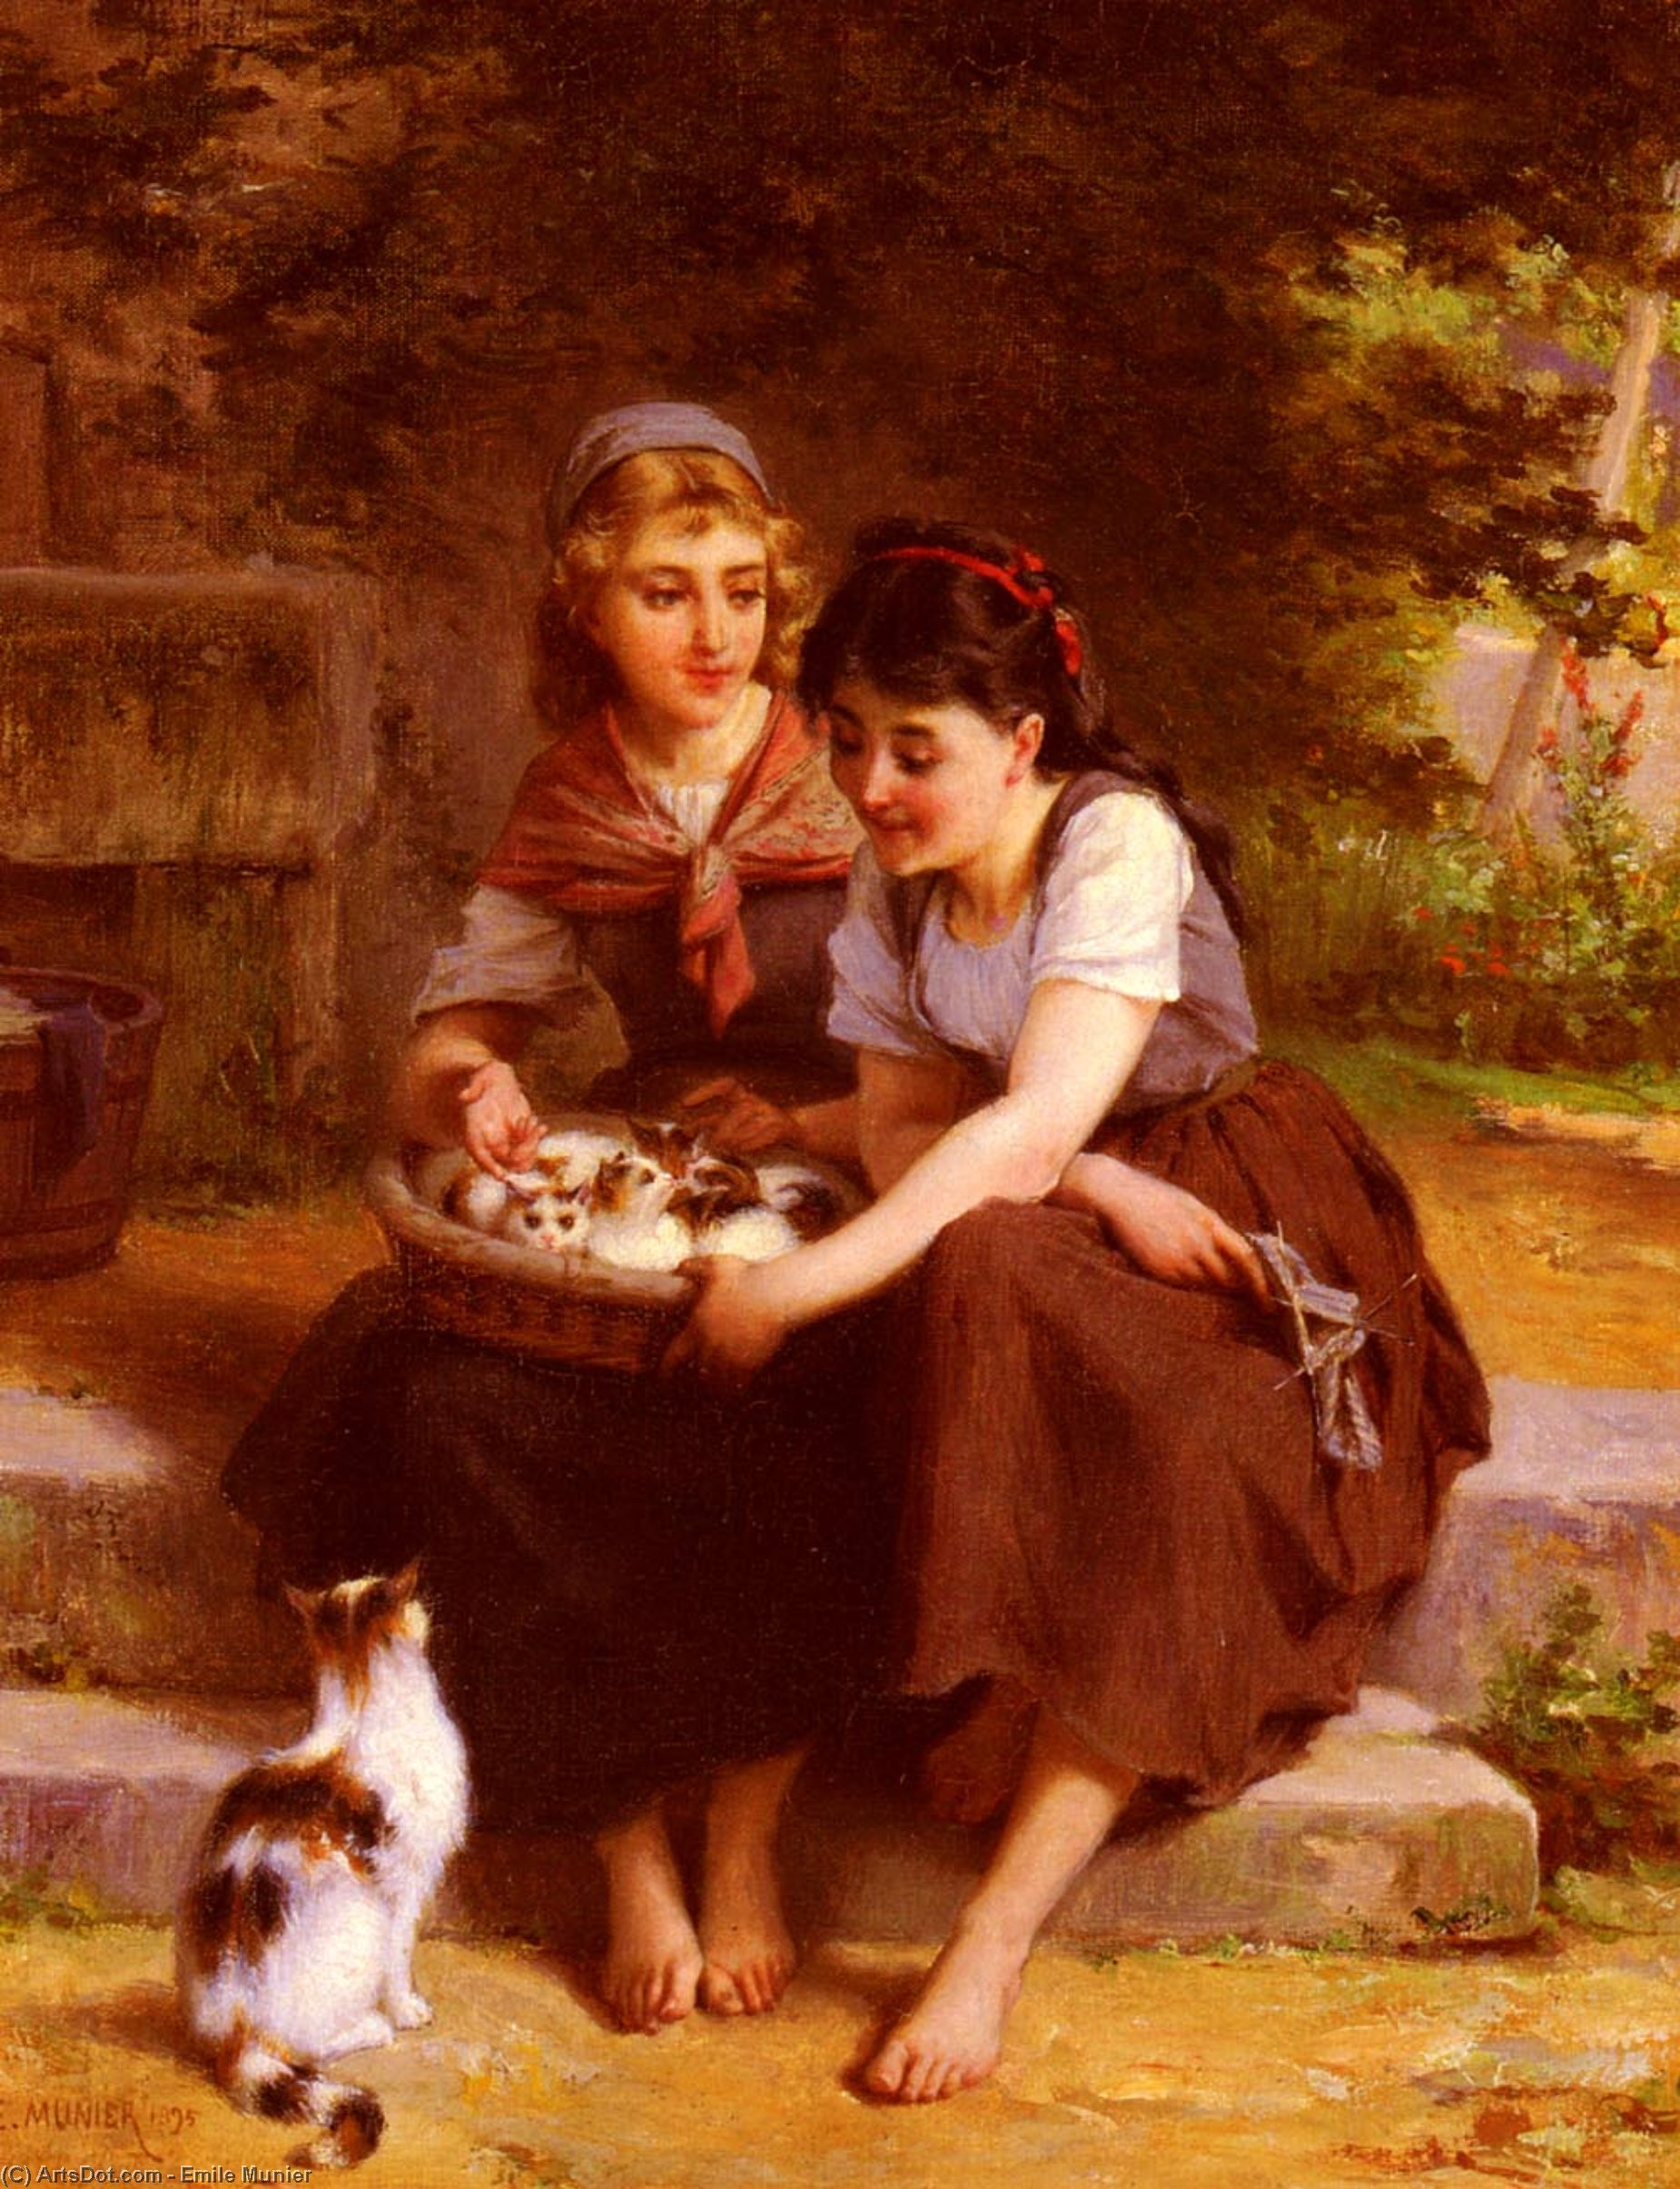 Two Girls With A Basket Of Kittens by Emile Munier (1840-1895, France)